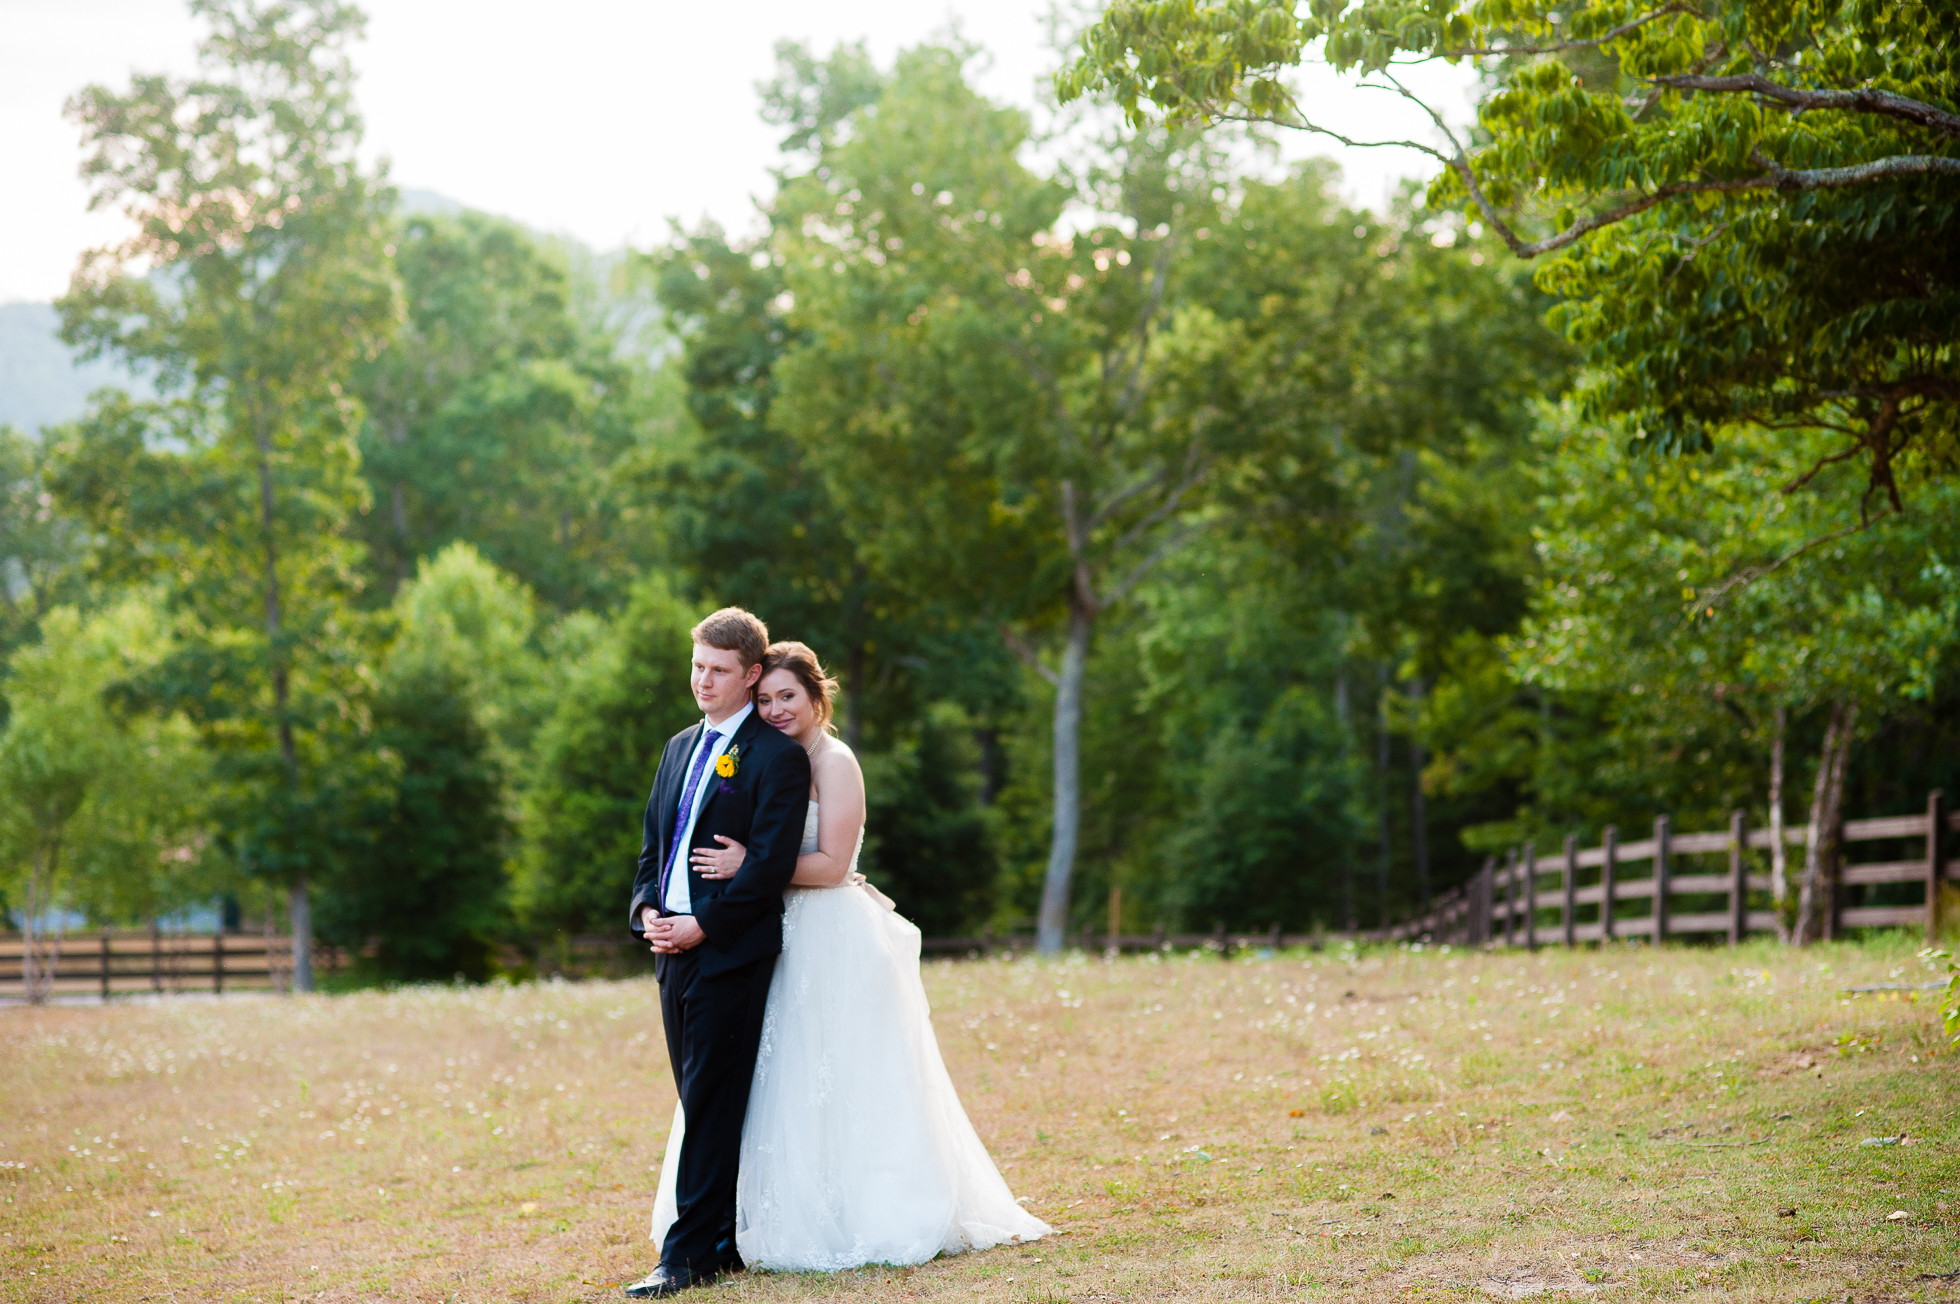 romantic asheville wedding portrait of bride and groom